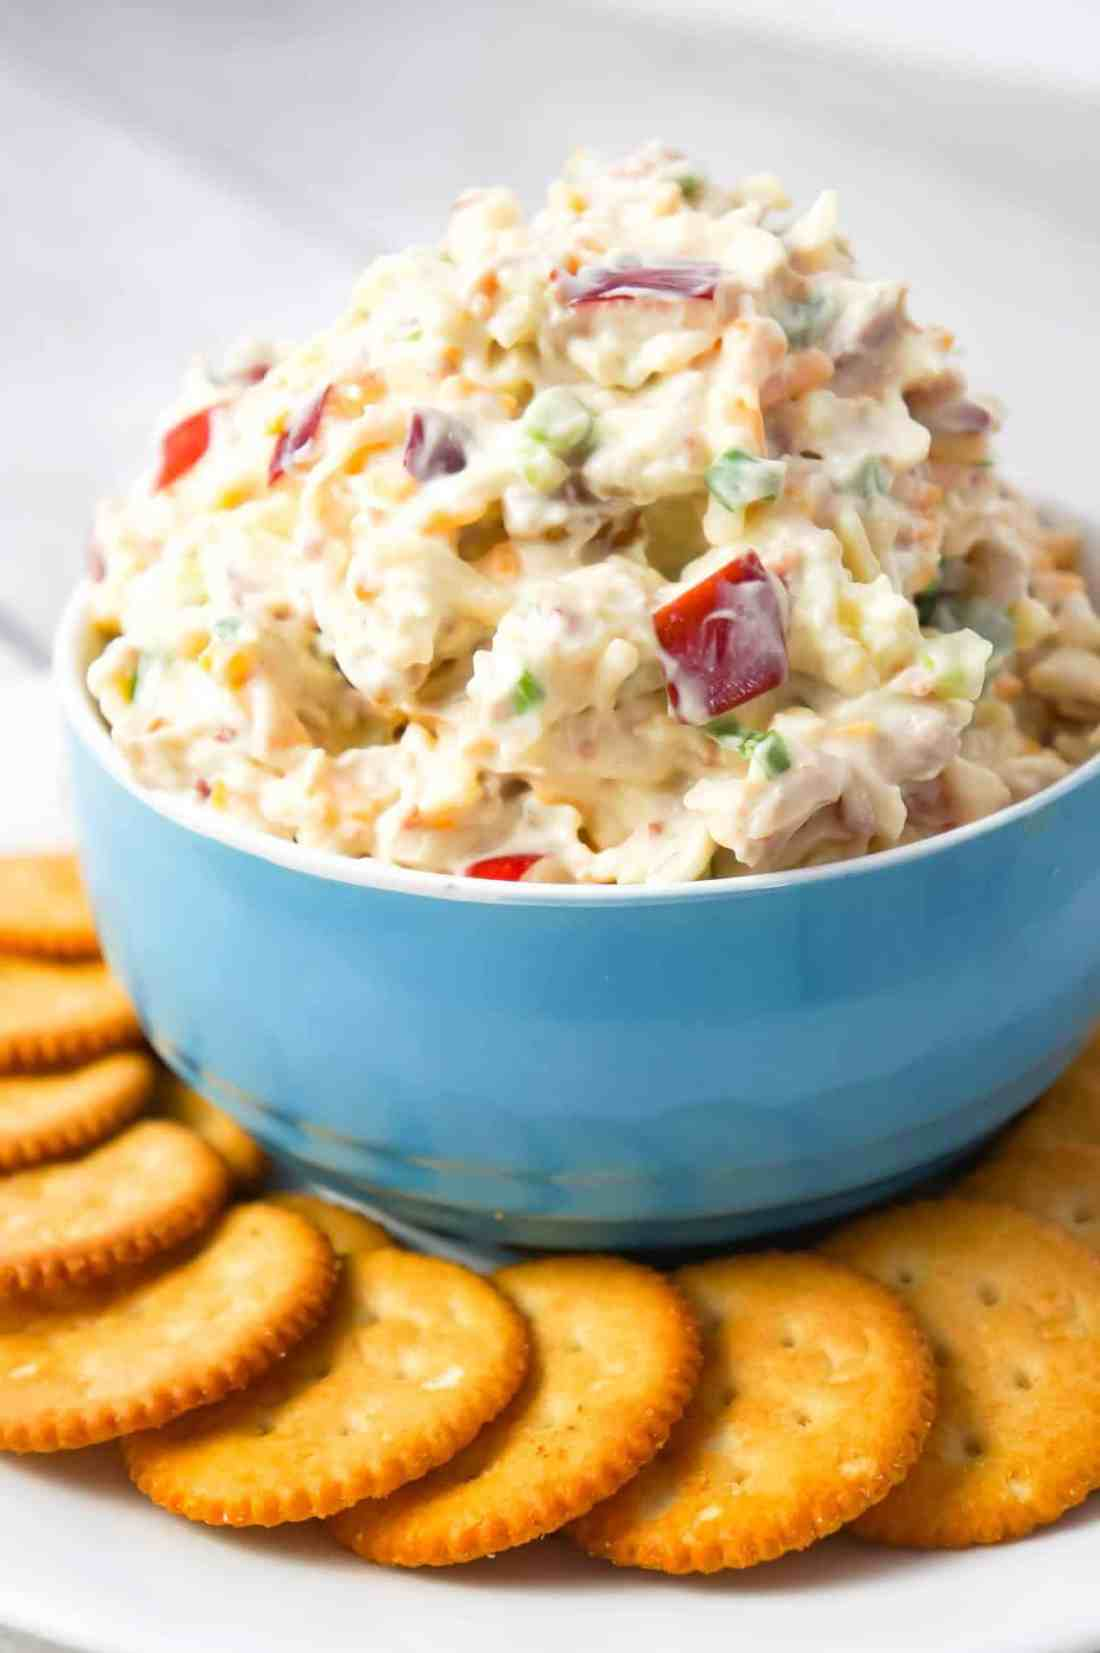 Bacon Apple Cheddar Dip is an easy cold party dip recipe loaded with diced apples, crumbled bacon, chopped walnuts, green onions and shredded cheddar cheese.